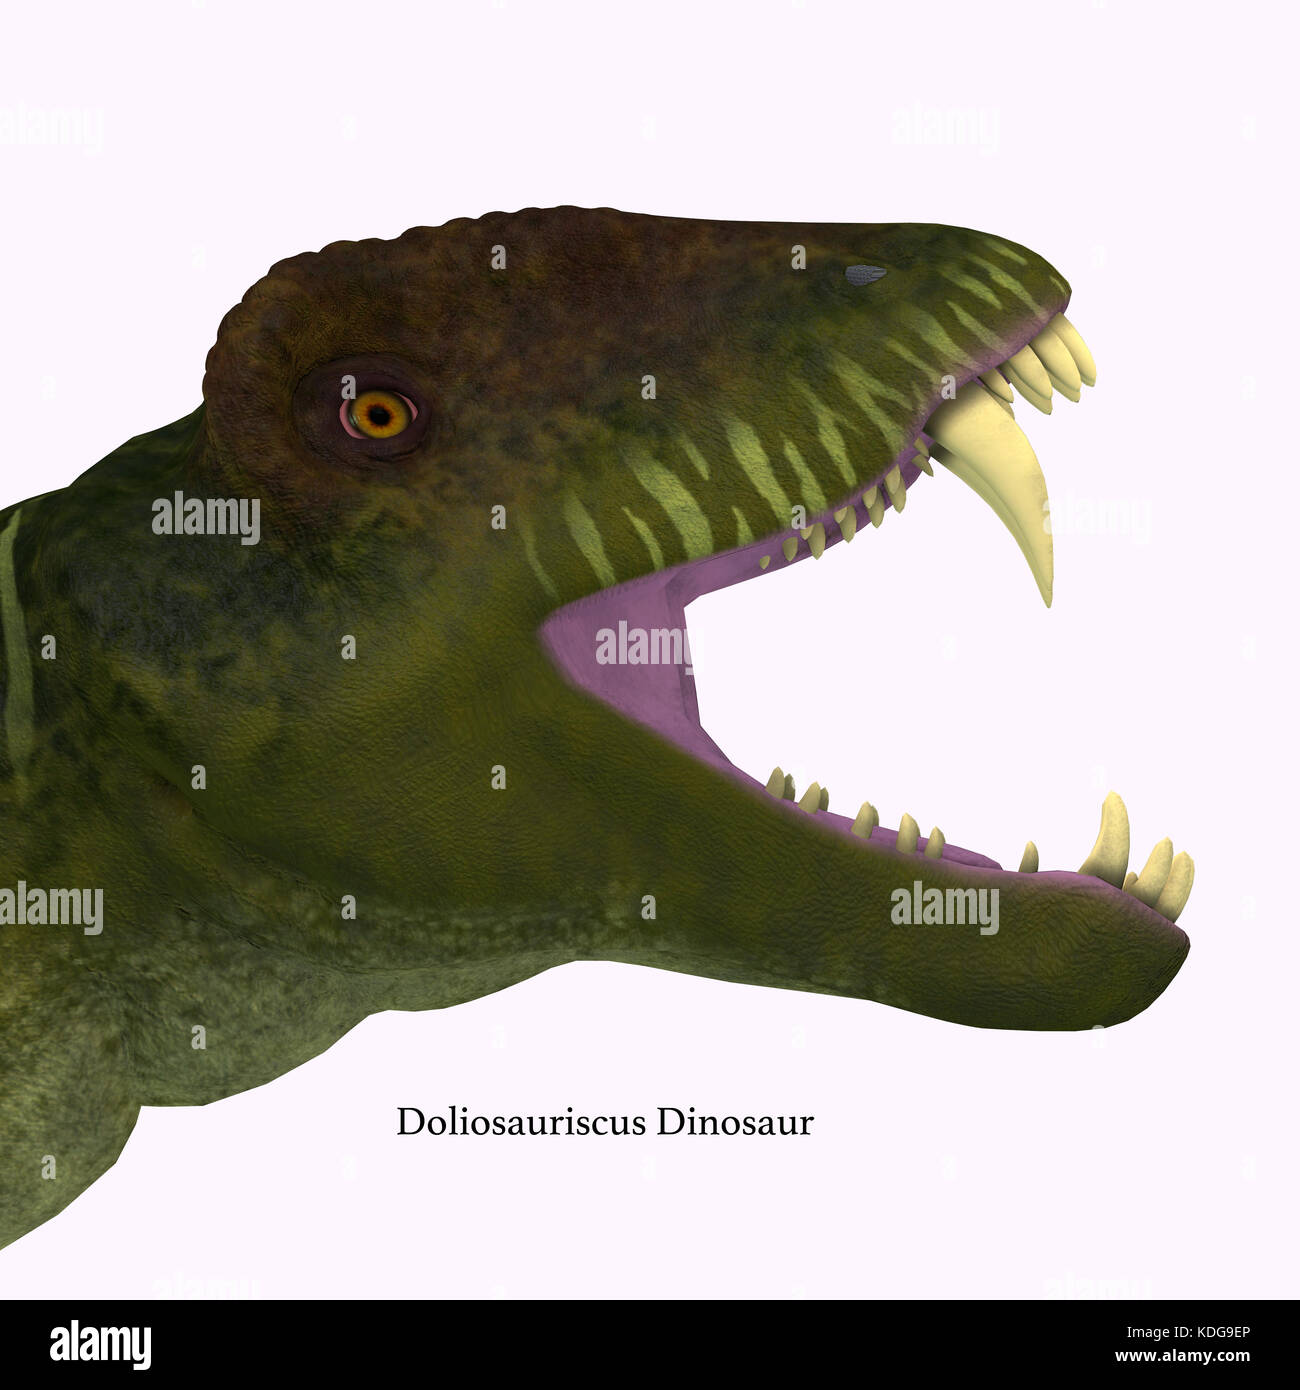 Doliosauriscus Dinosaur Head  - Doliosauriscus is an extinct genus of therapsid carnivorous dinosaur that lived - Stock Image